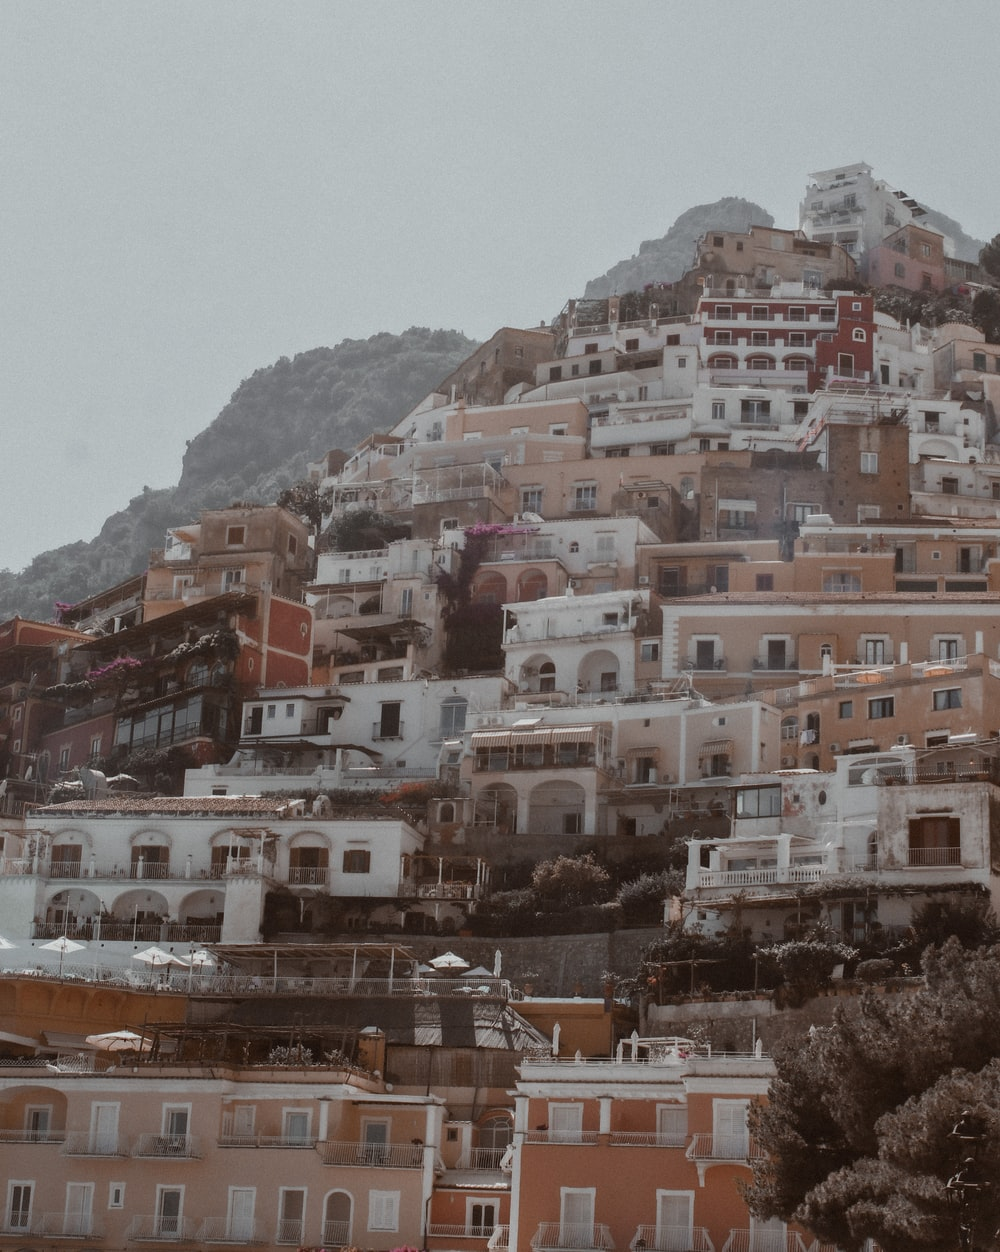 white and brown concrete buildings near mountain during daytime